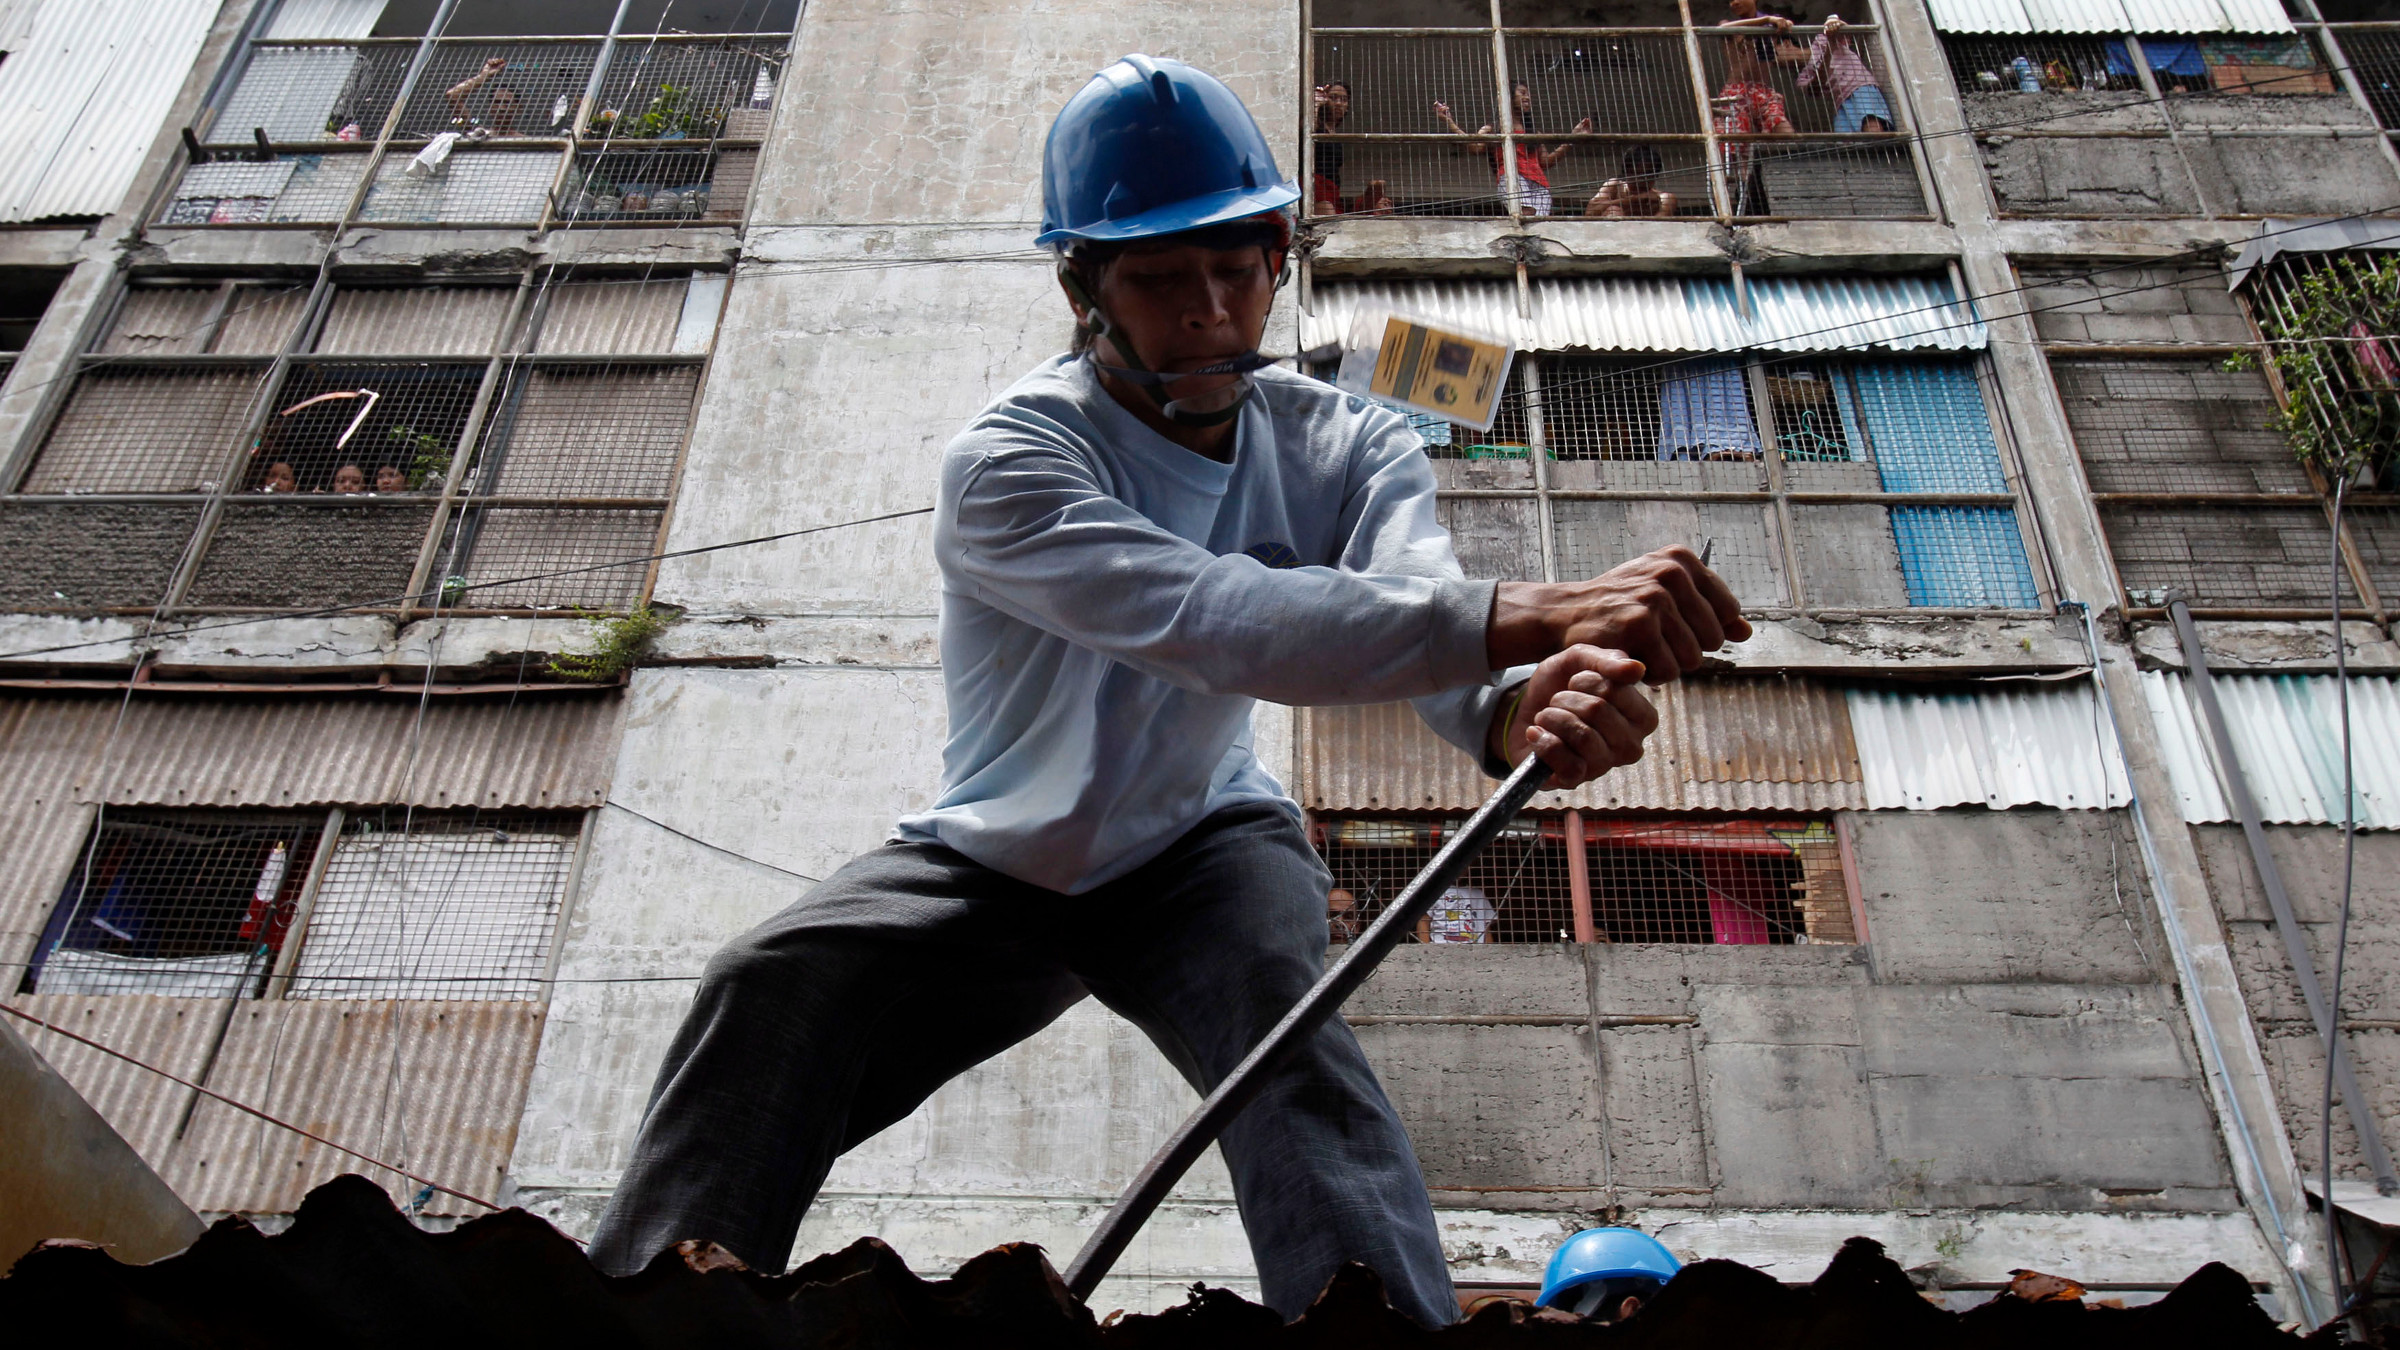 A member of the government demolition team removes the roof of a condemned structure in Vitas, Tondo city, metro Manila June 14, 2011. Manila city's government has been removing people from the dilapidated structures (in background) to avoid deaths in case of earthquake or accidents. At least hundreds of families were occupying the condemned dilapidated structures.